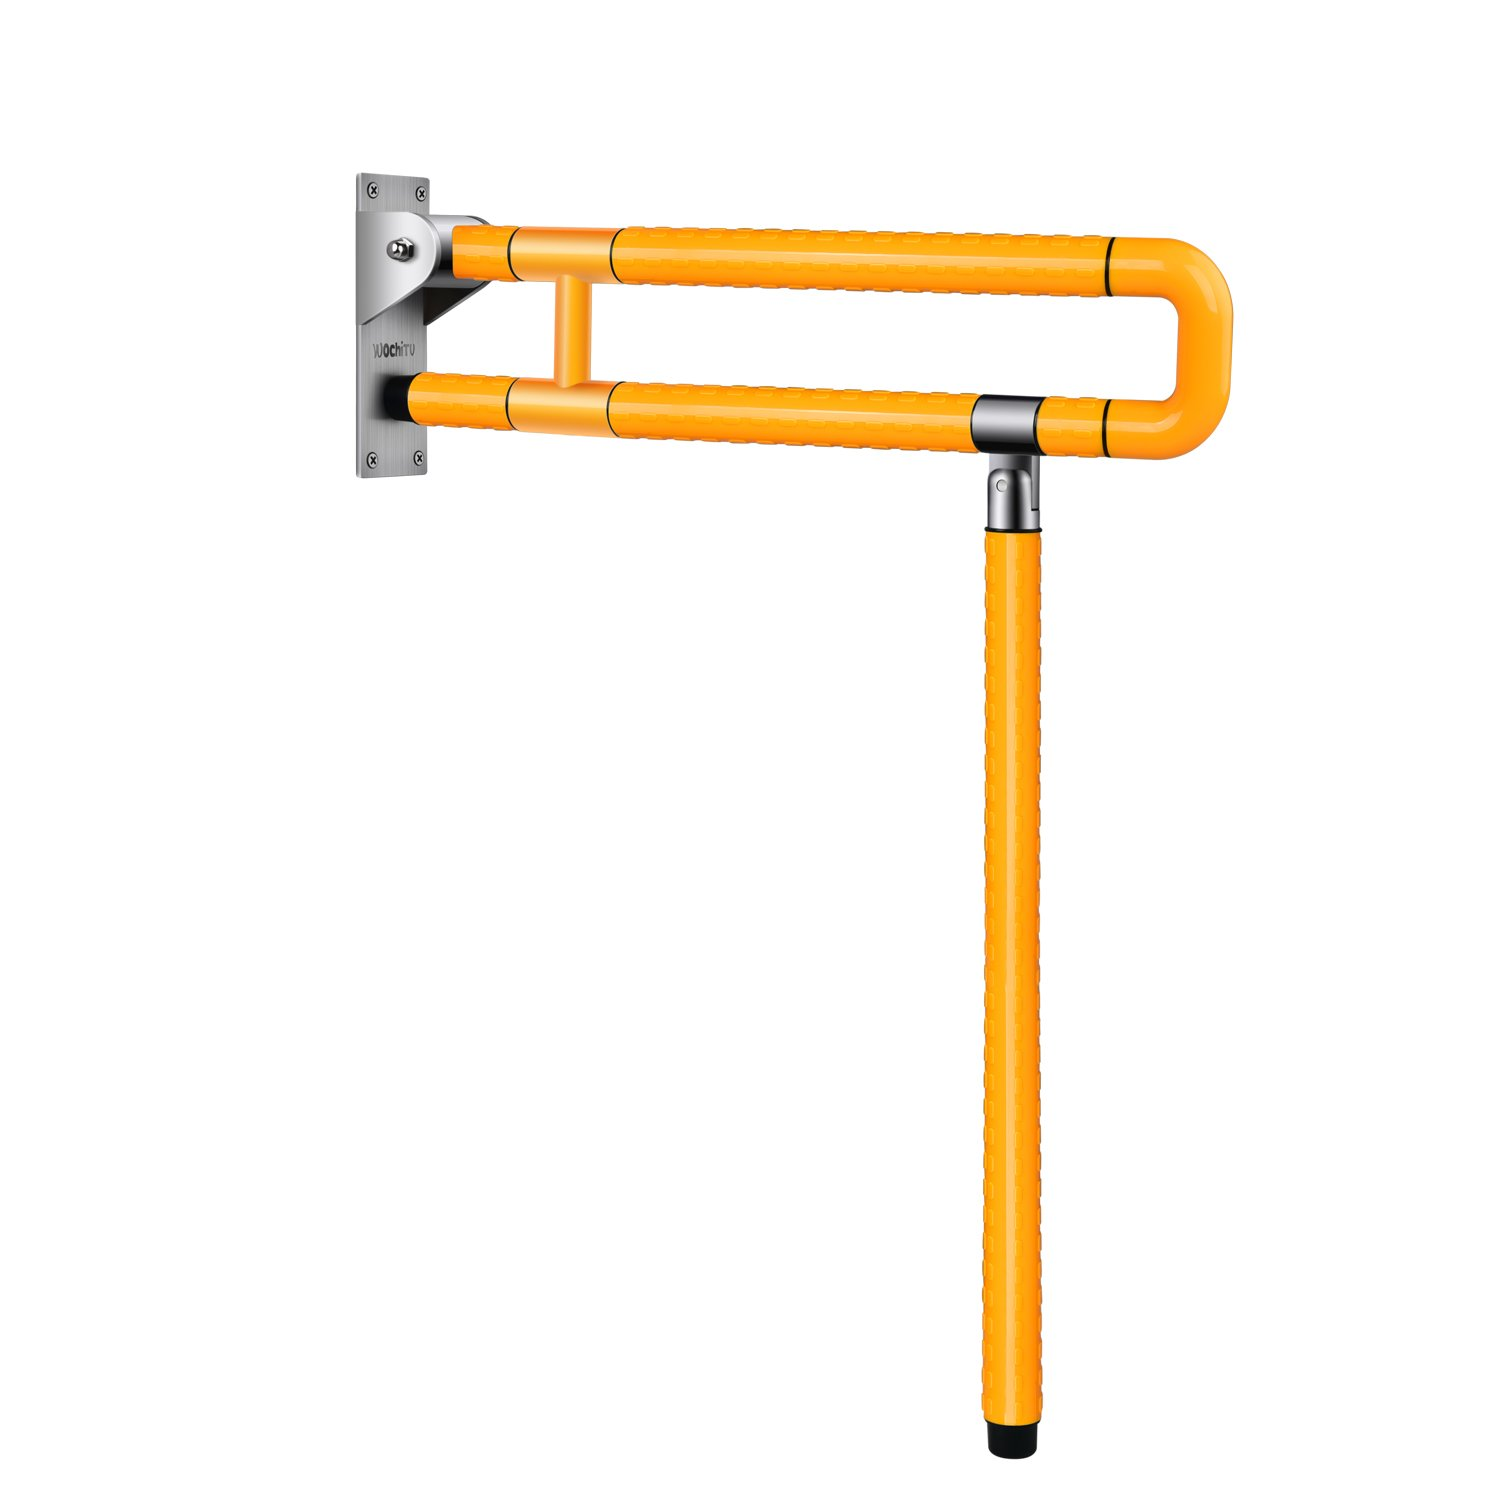 Handicap Rails Medical Safety Toilet Grab Bar Handicap Bathroom Seat Support Folding Safety Bars Handrail Handles for Disability Aid and Elderly Assistance (Yellow)